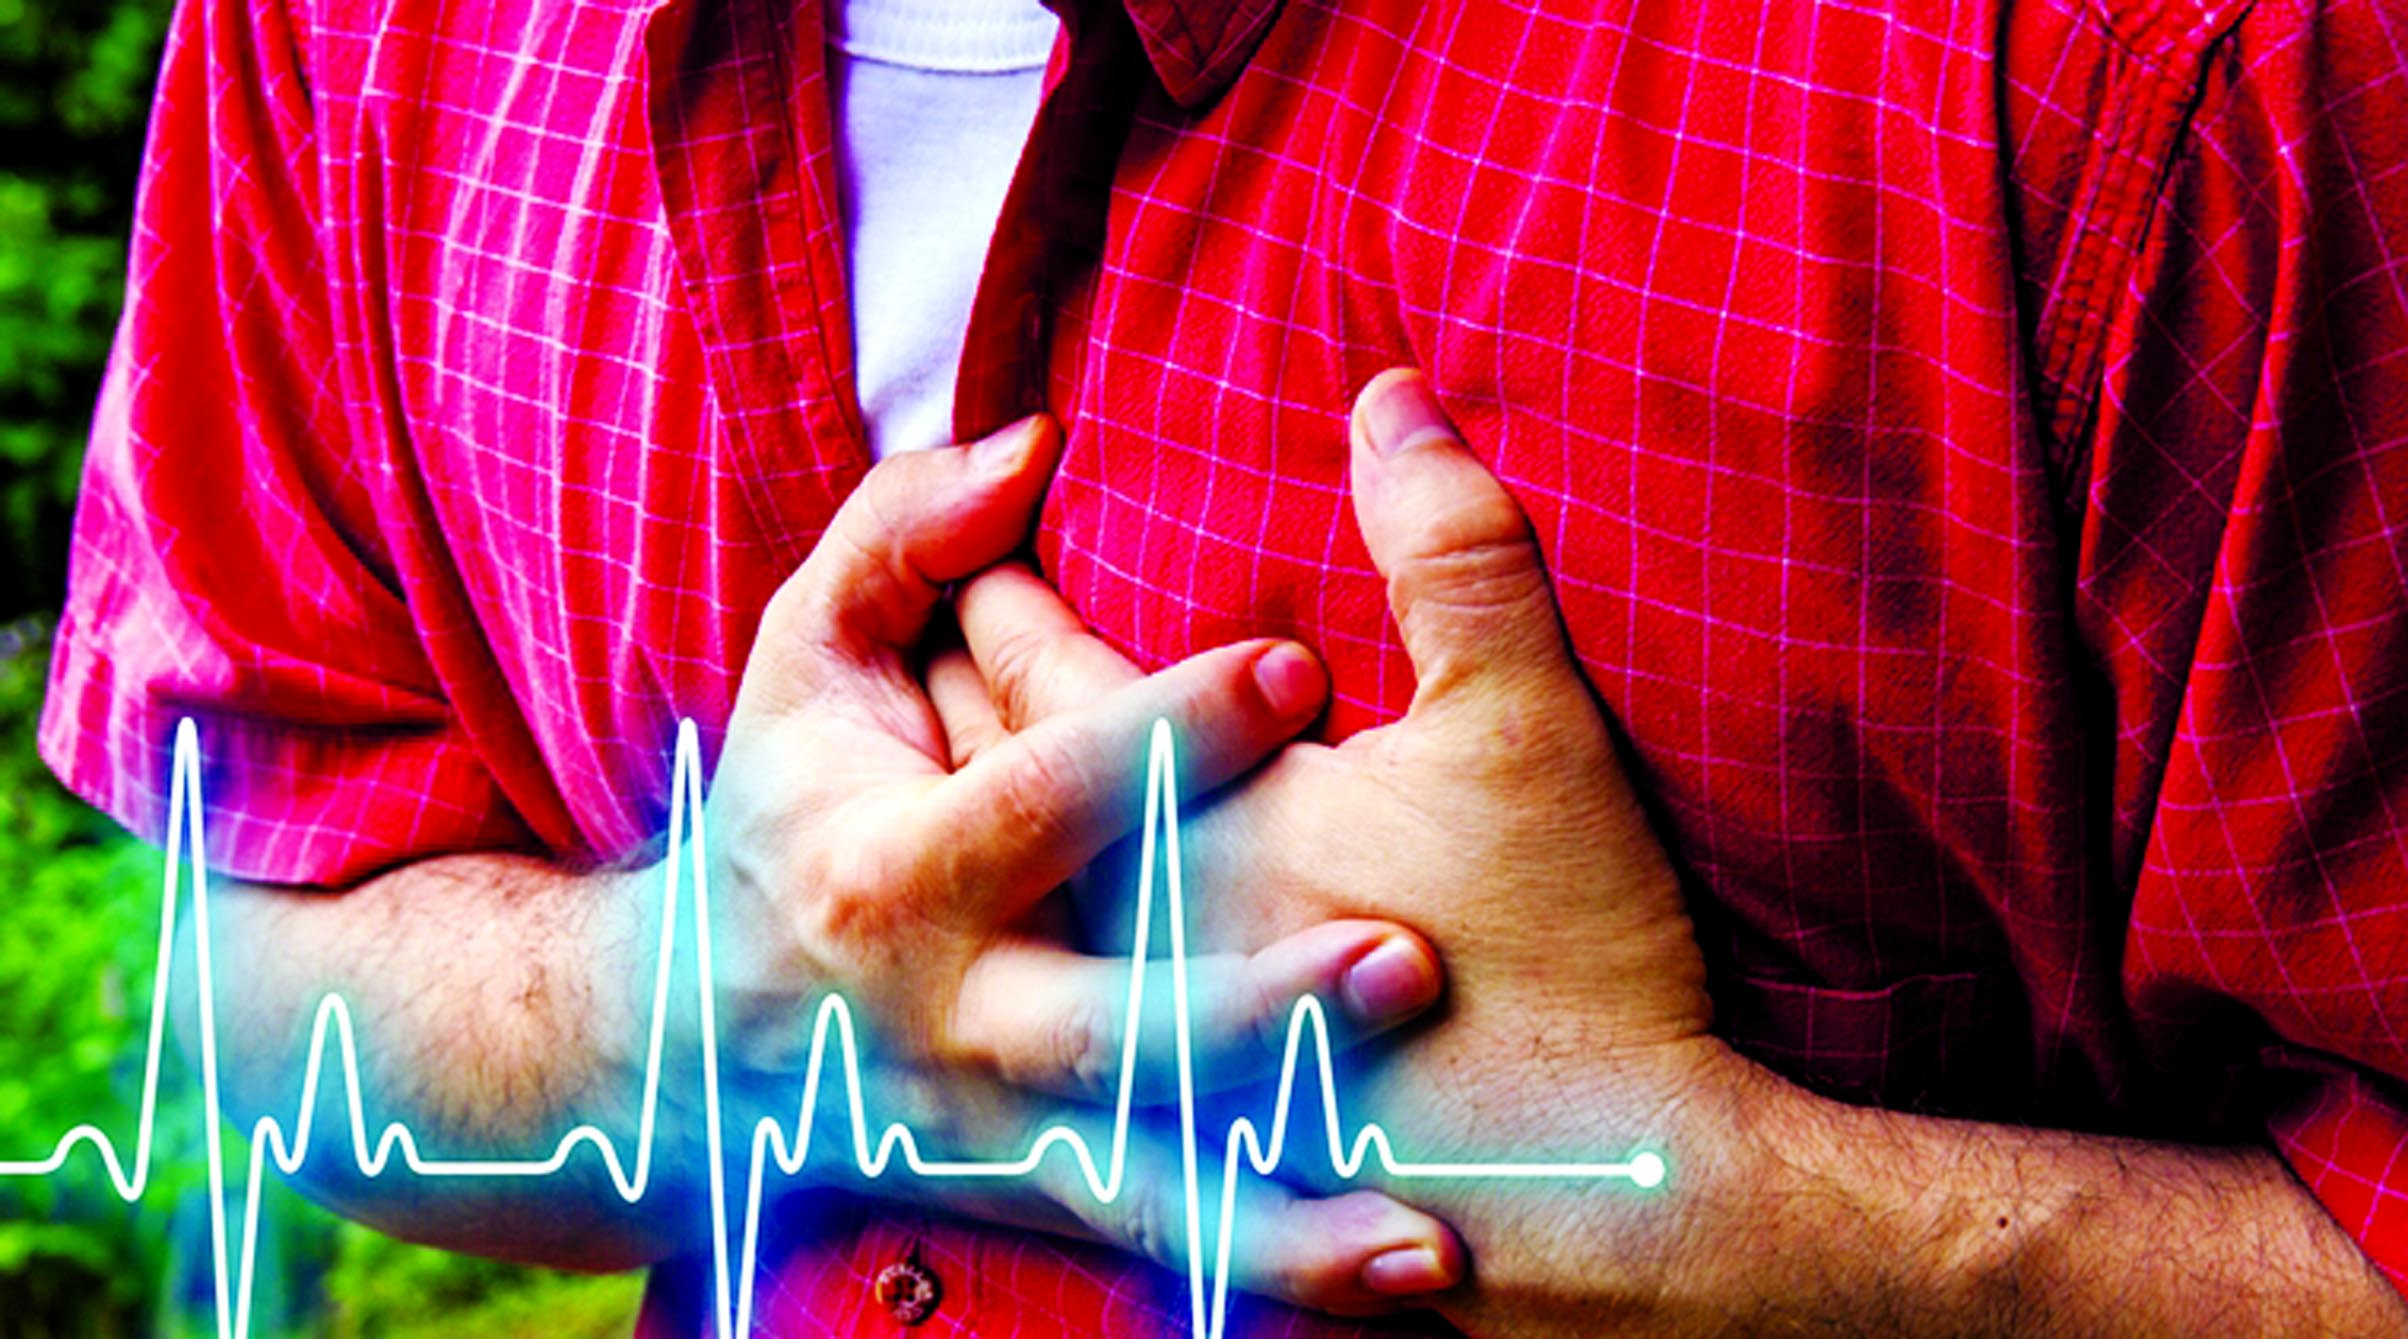 The findings imply a close link between the heart and brain even in presumably healthy individuals